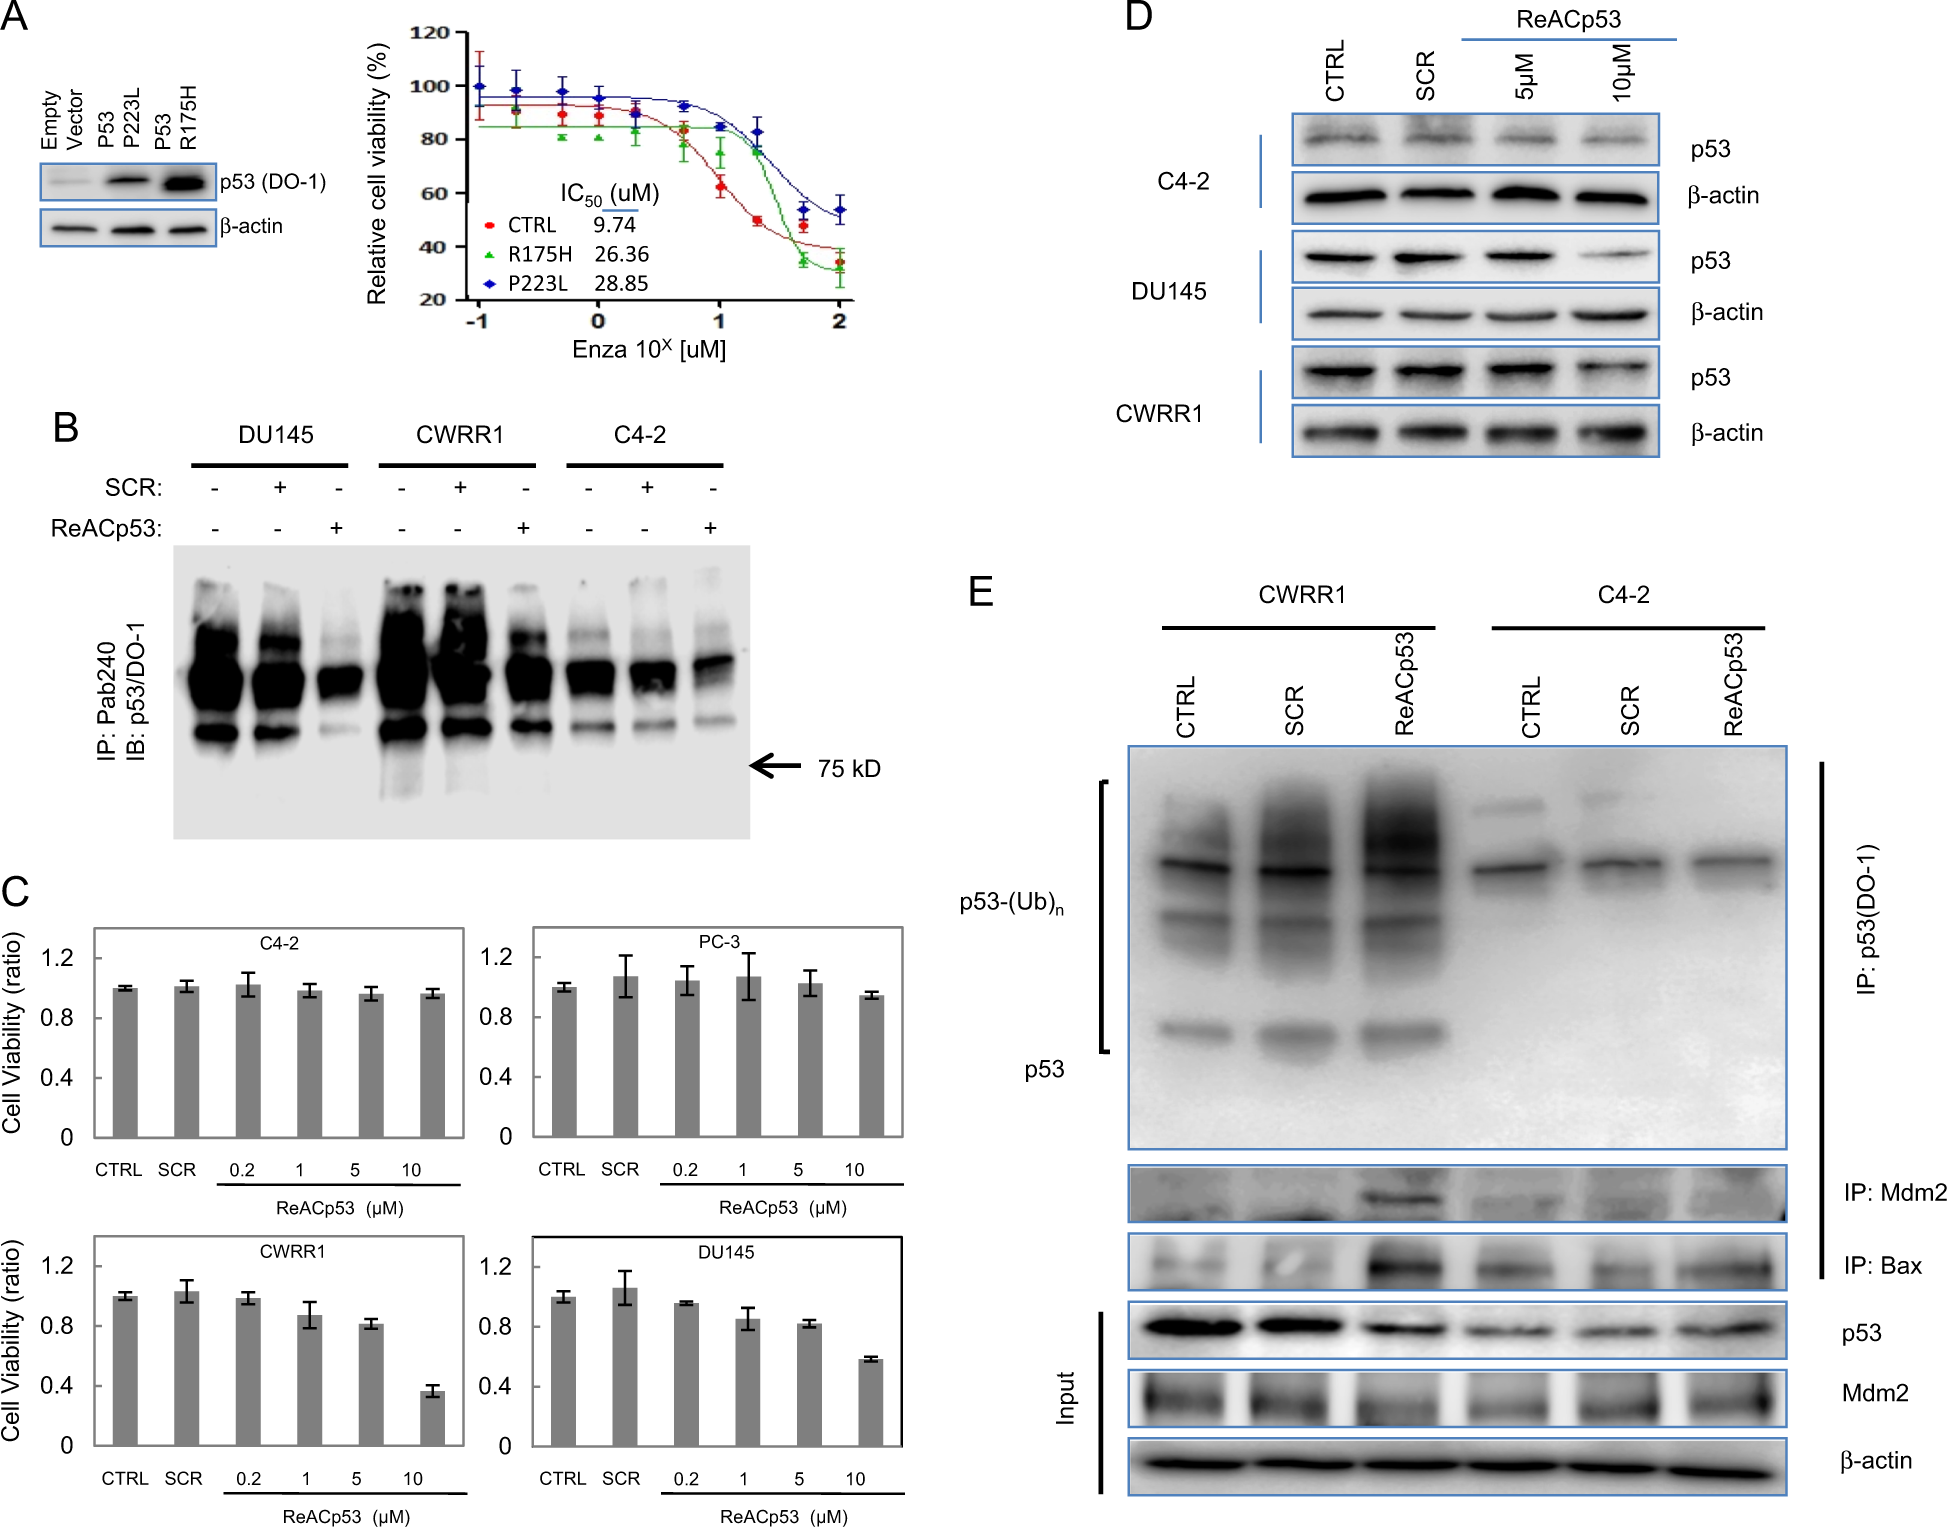 Therapeutic potential of ReACp53 targeting mutant p53 protein in CRPC